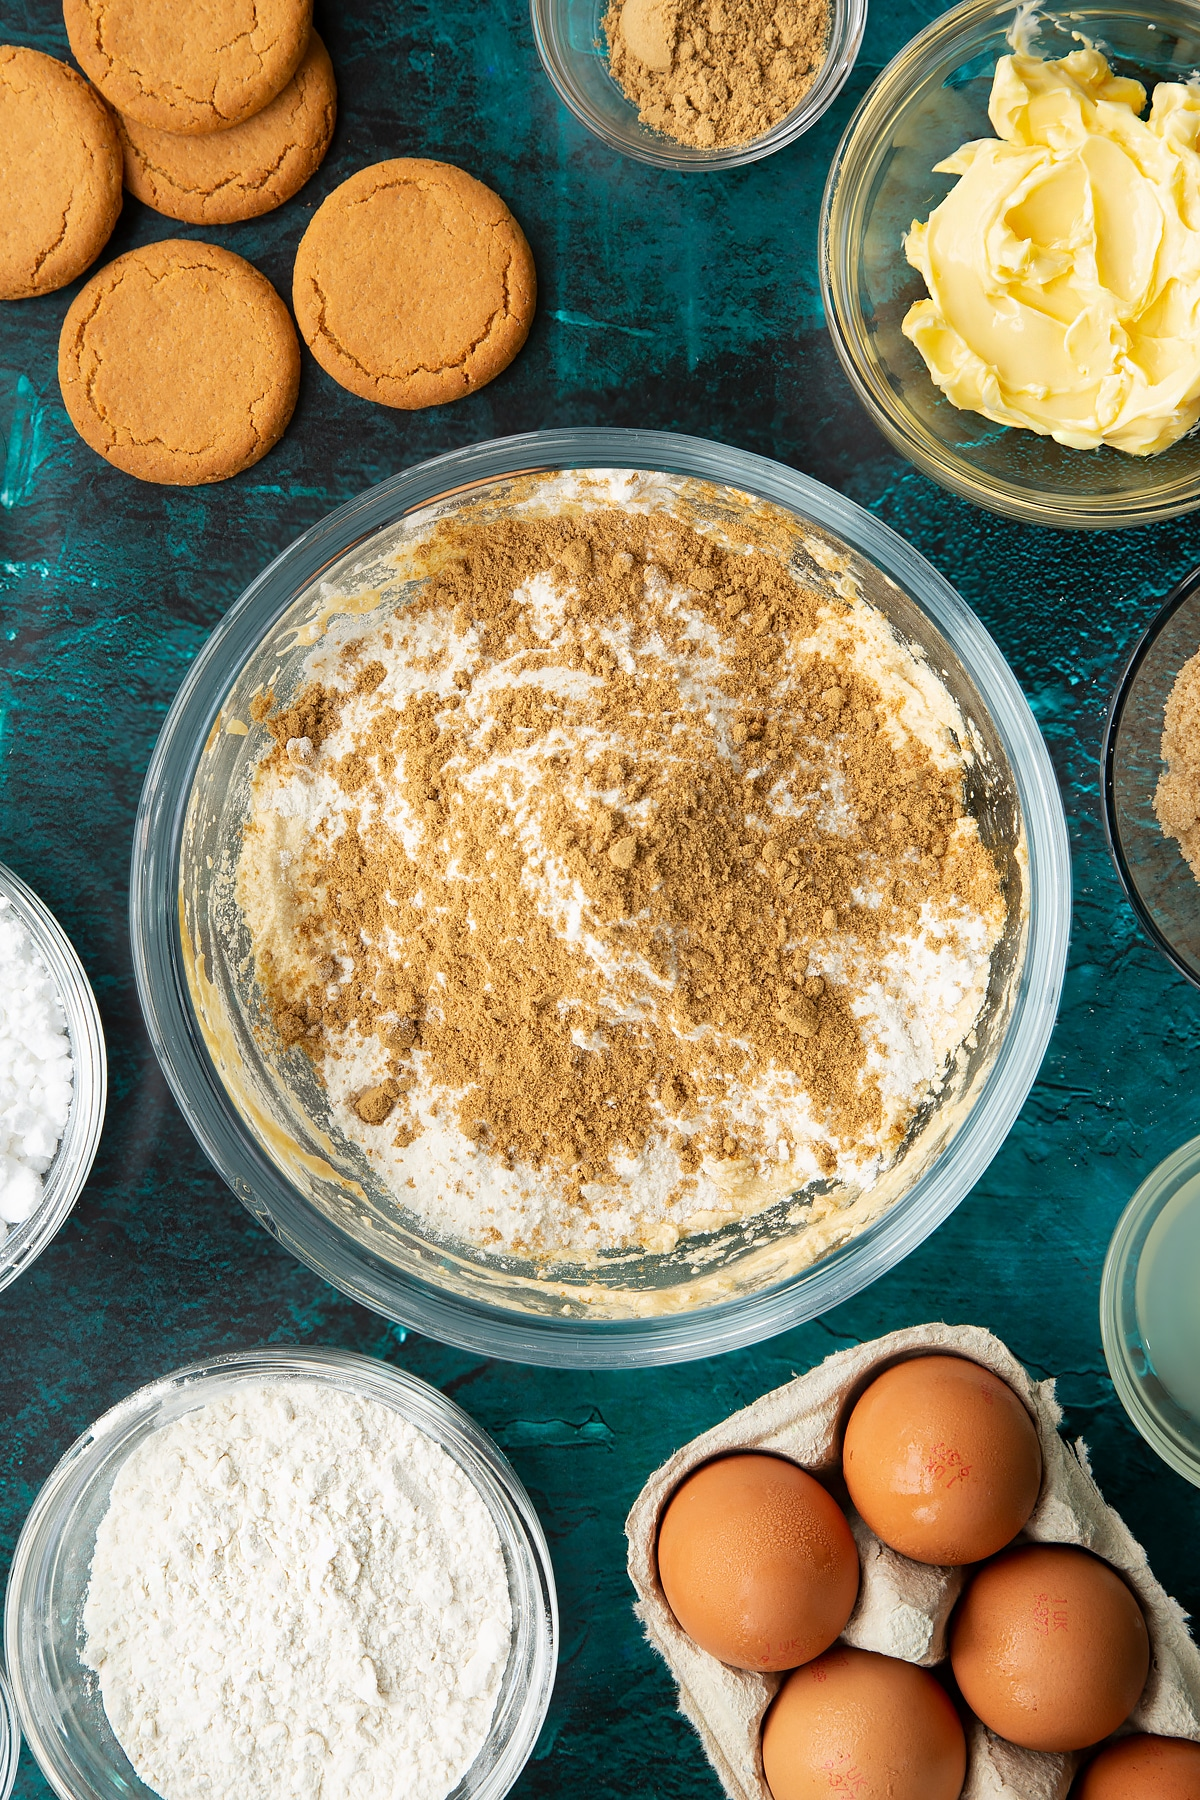 Butter, brown sugar, eggs, vanilla and chopped stem ginger beaten together in a glass mixing bowl with flour, baking powder and ginger on top. Ingredients to make gingerbread donuts surround the bowl.